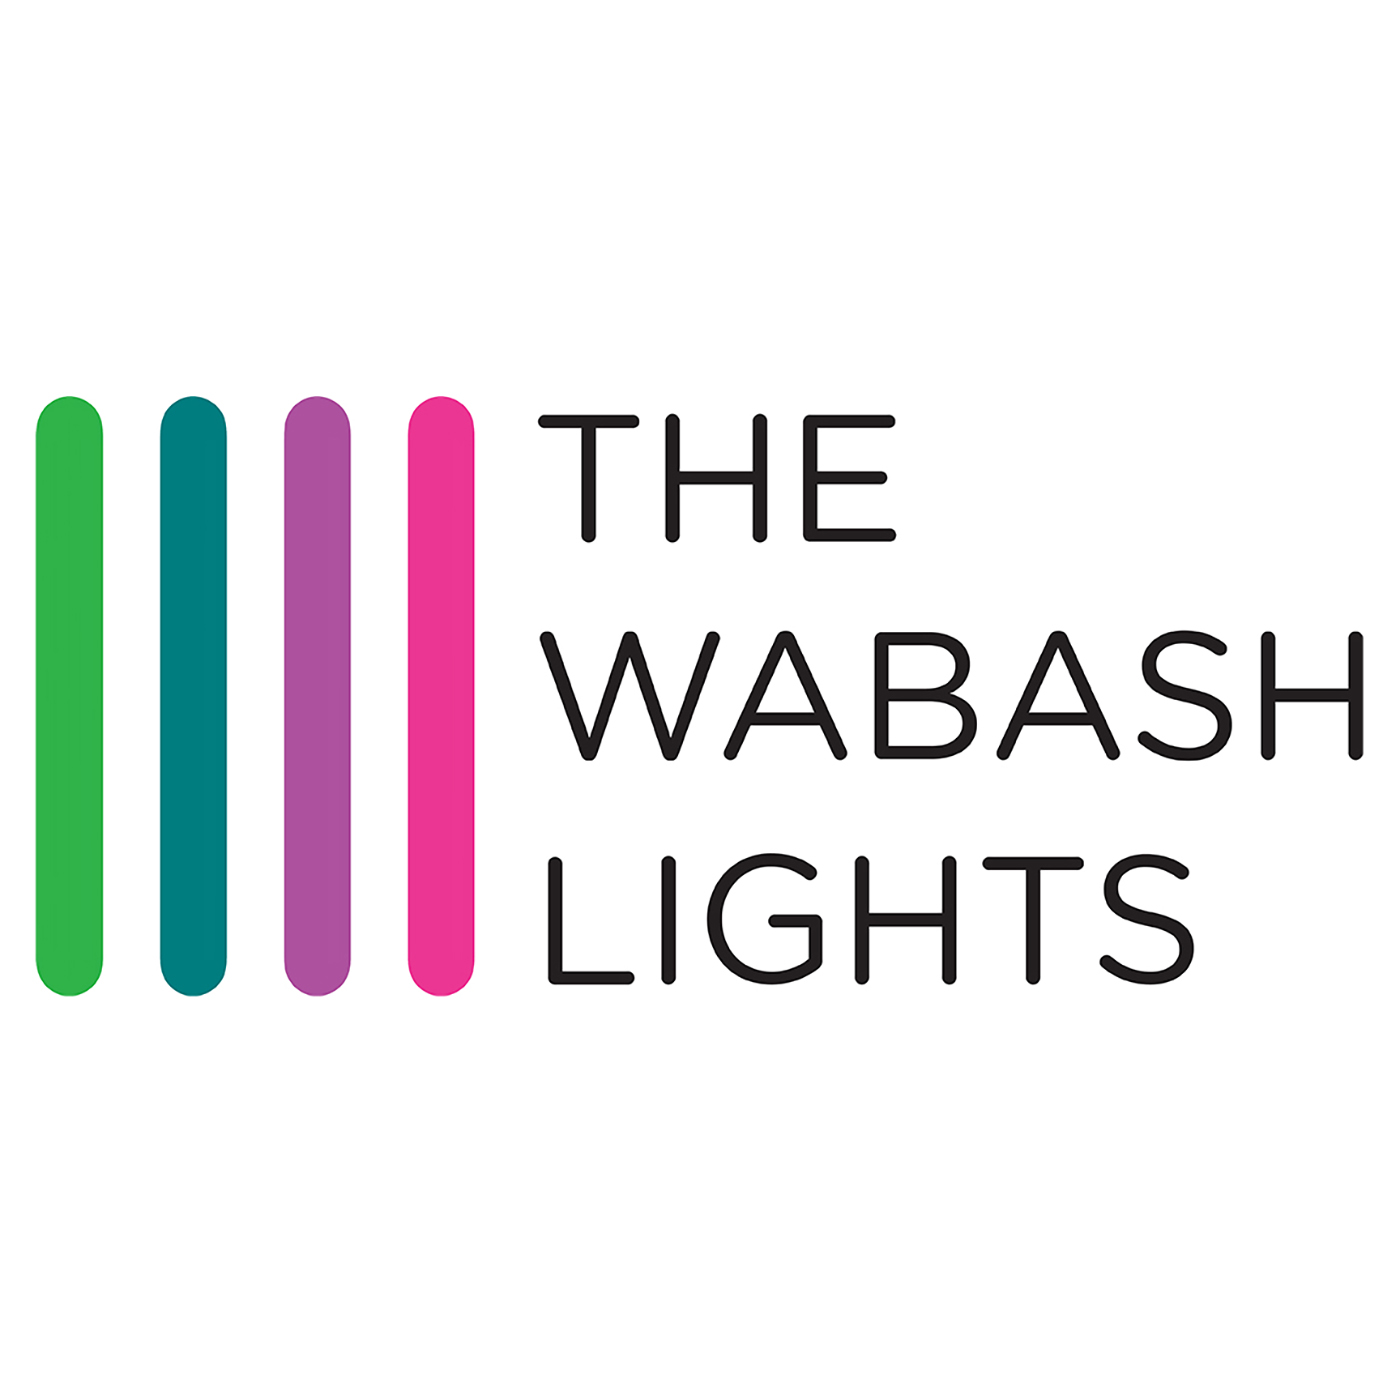 TWL - The Wabash Lights